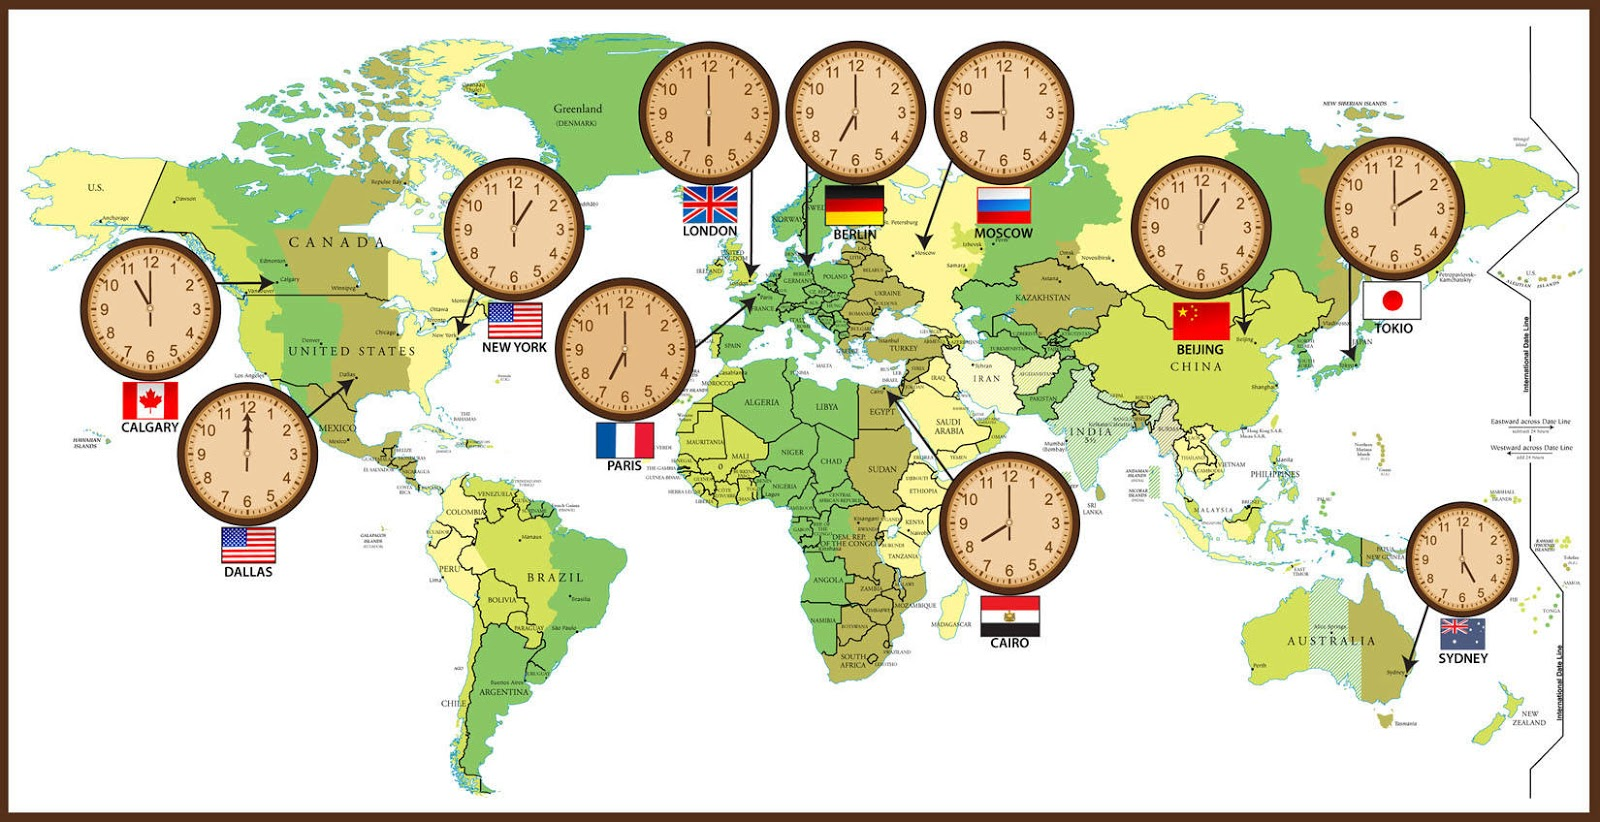 LUV GO World Time Zones - Us time zone map with times